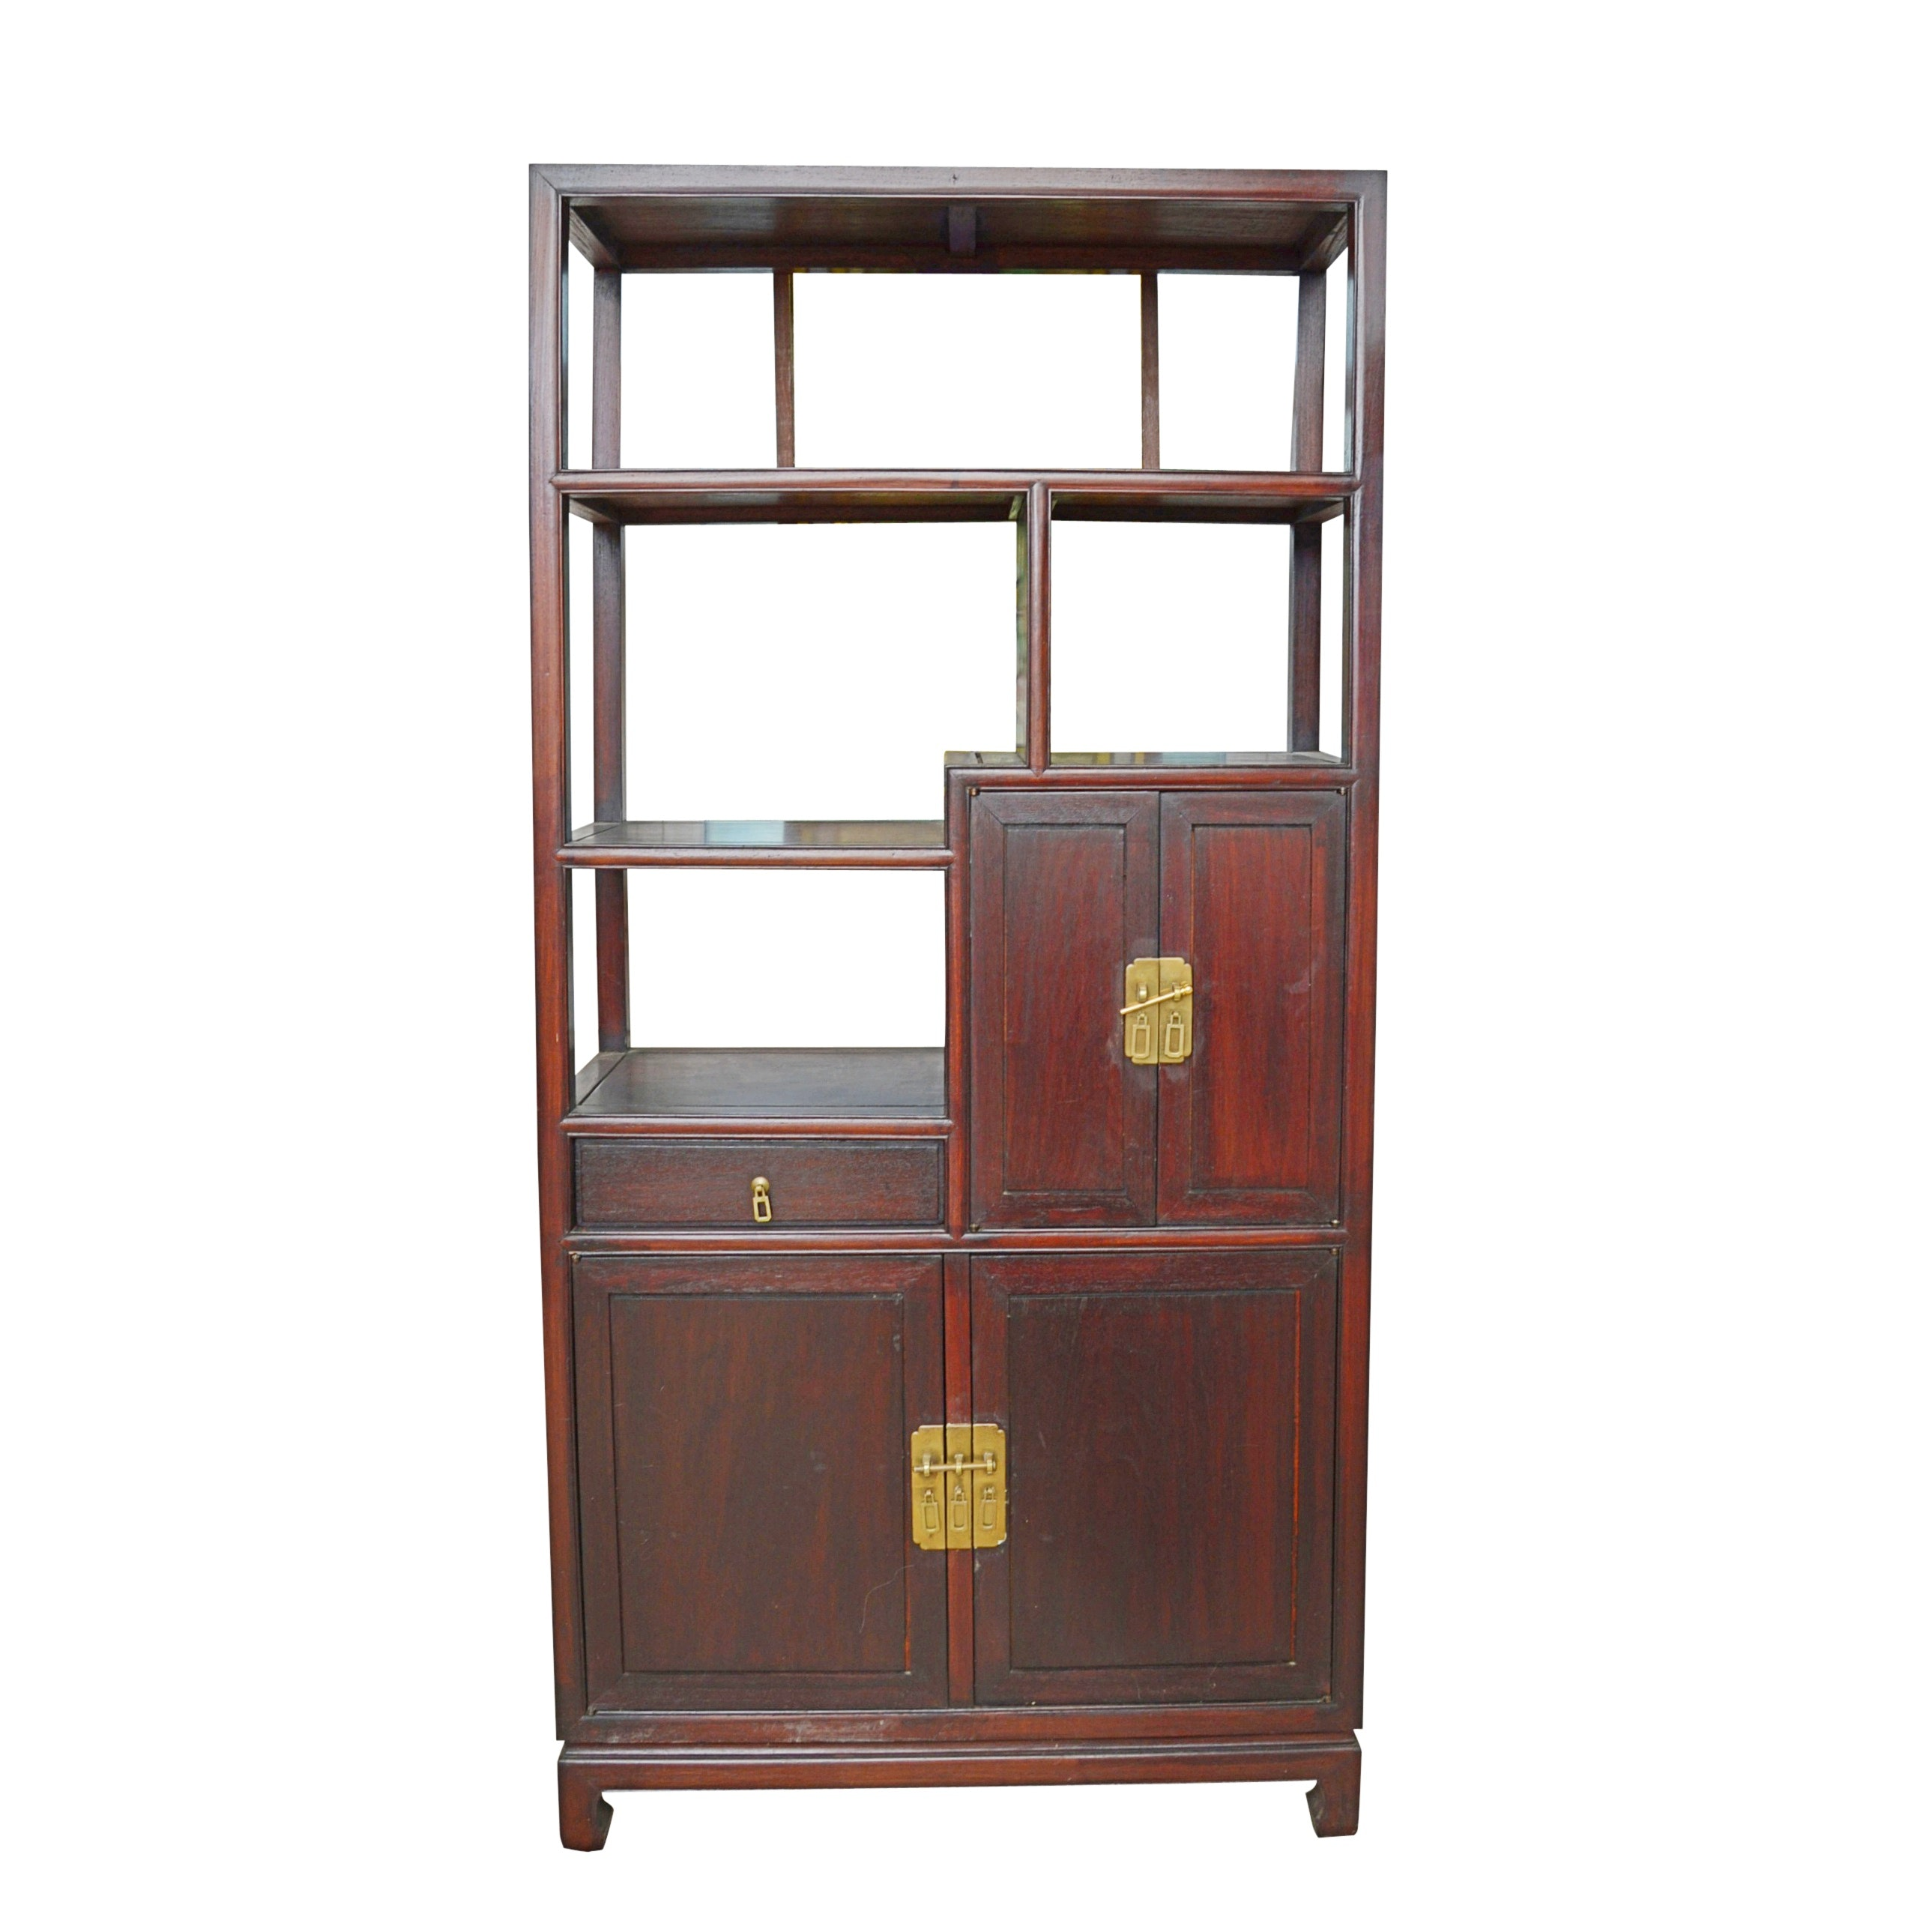 Vintage Asian Inspired Bookcase Cabinet